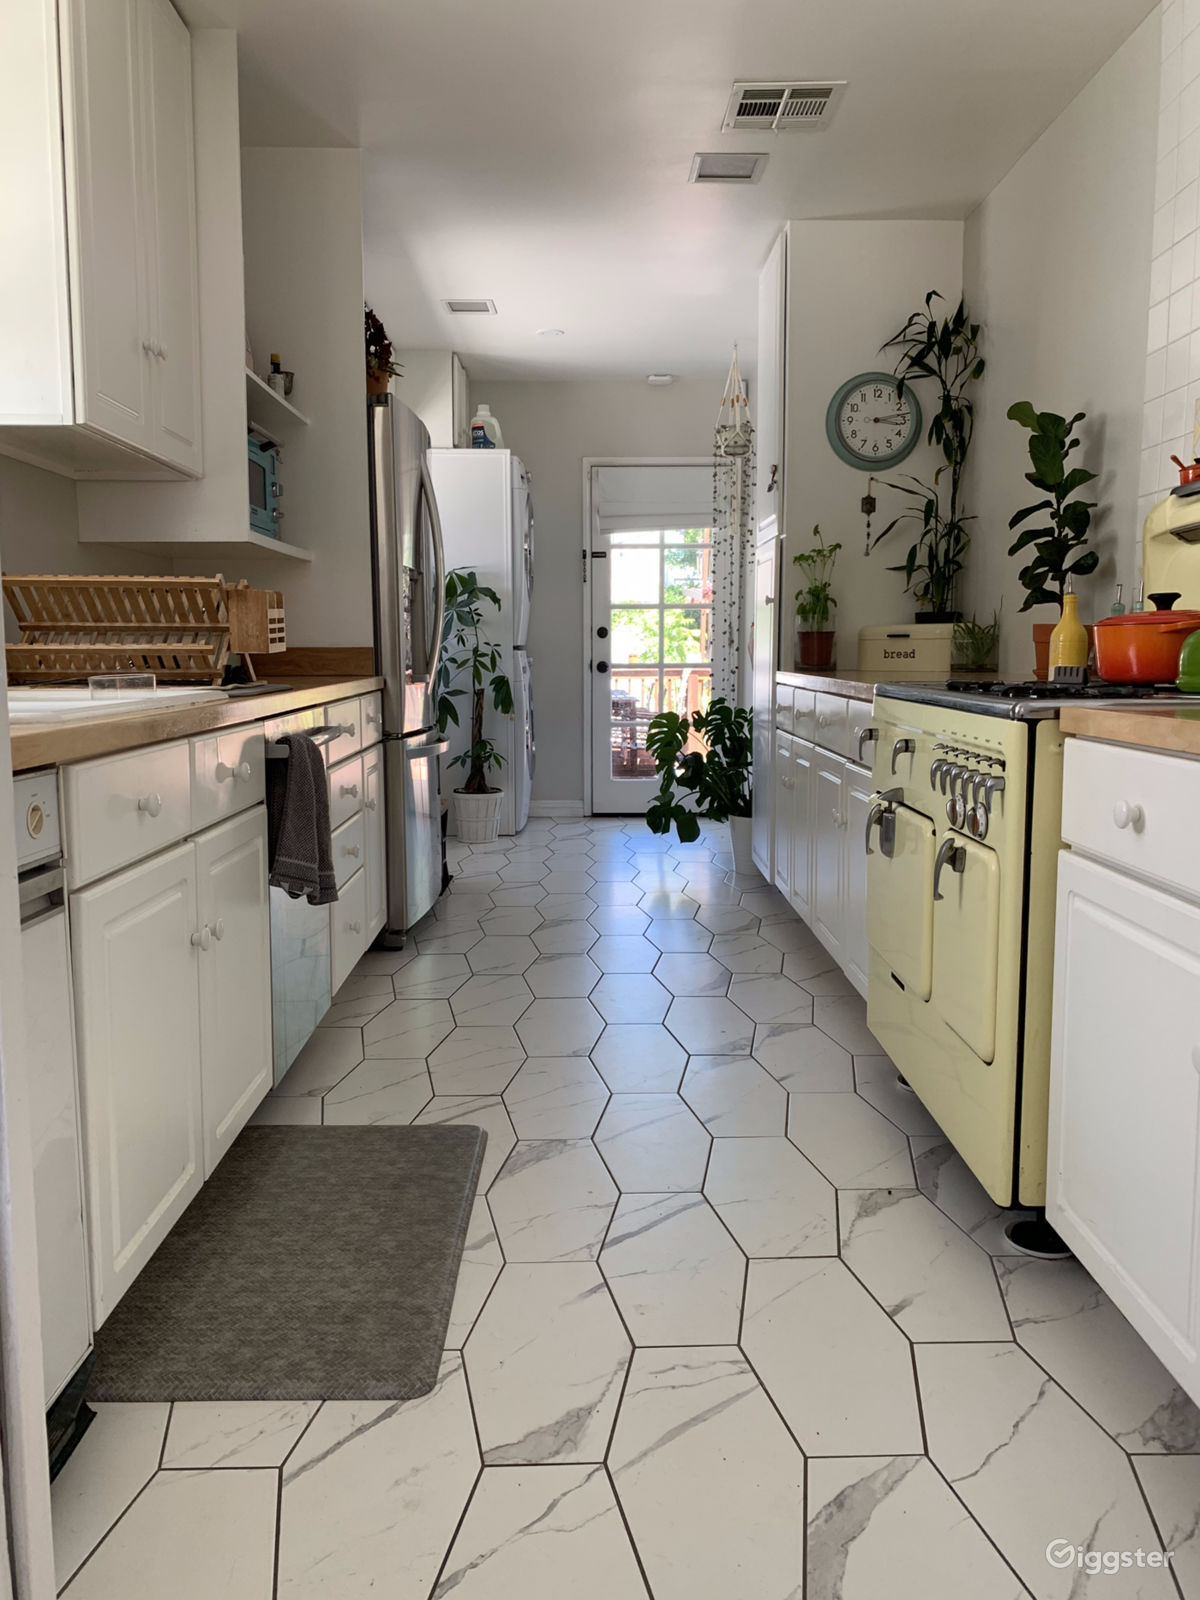 Bright & Well Maintained 1950's Suburban Home | Rent this ... 1950s Suburban Homes